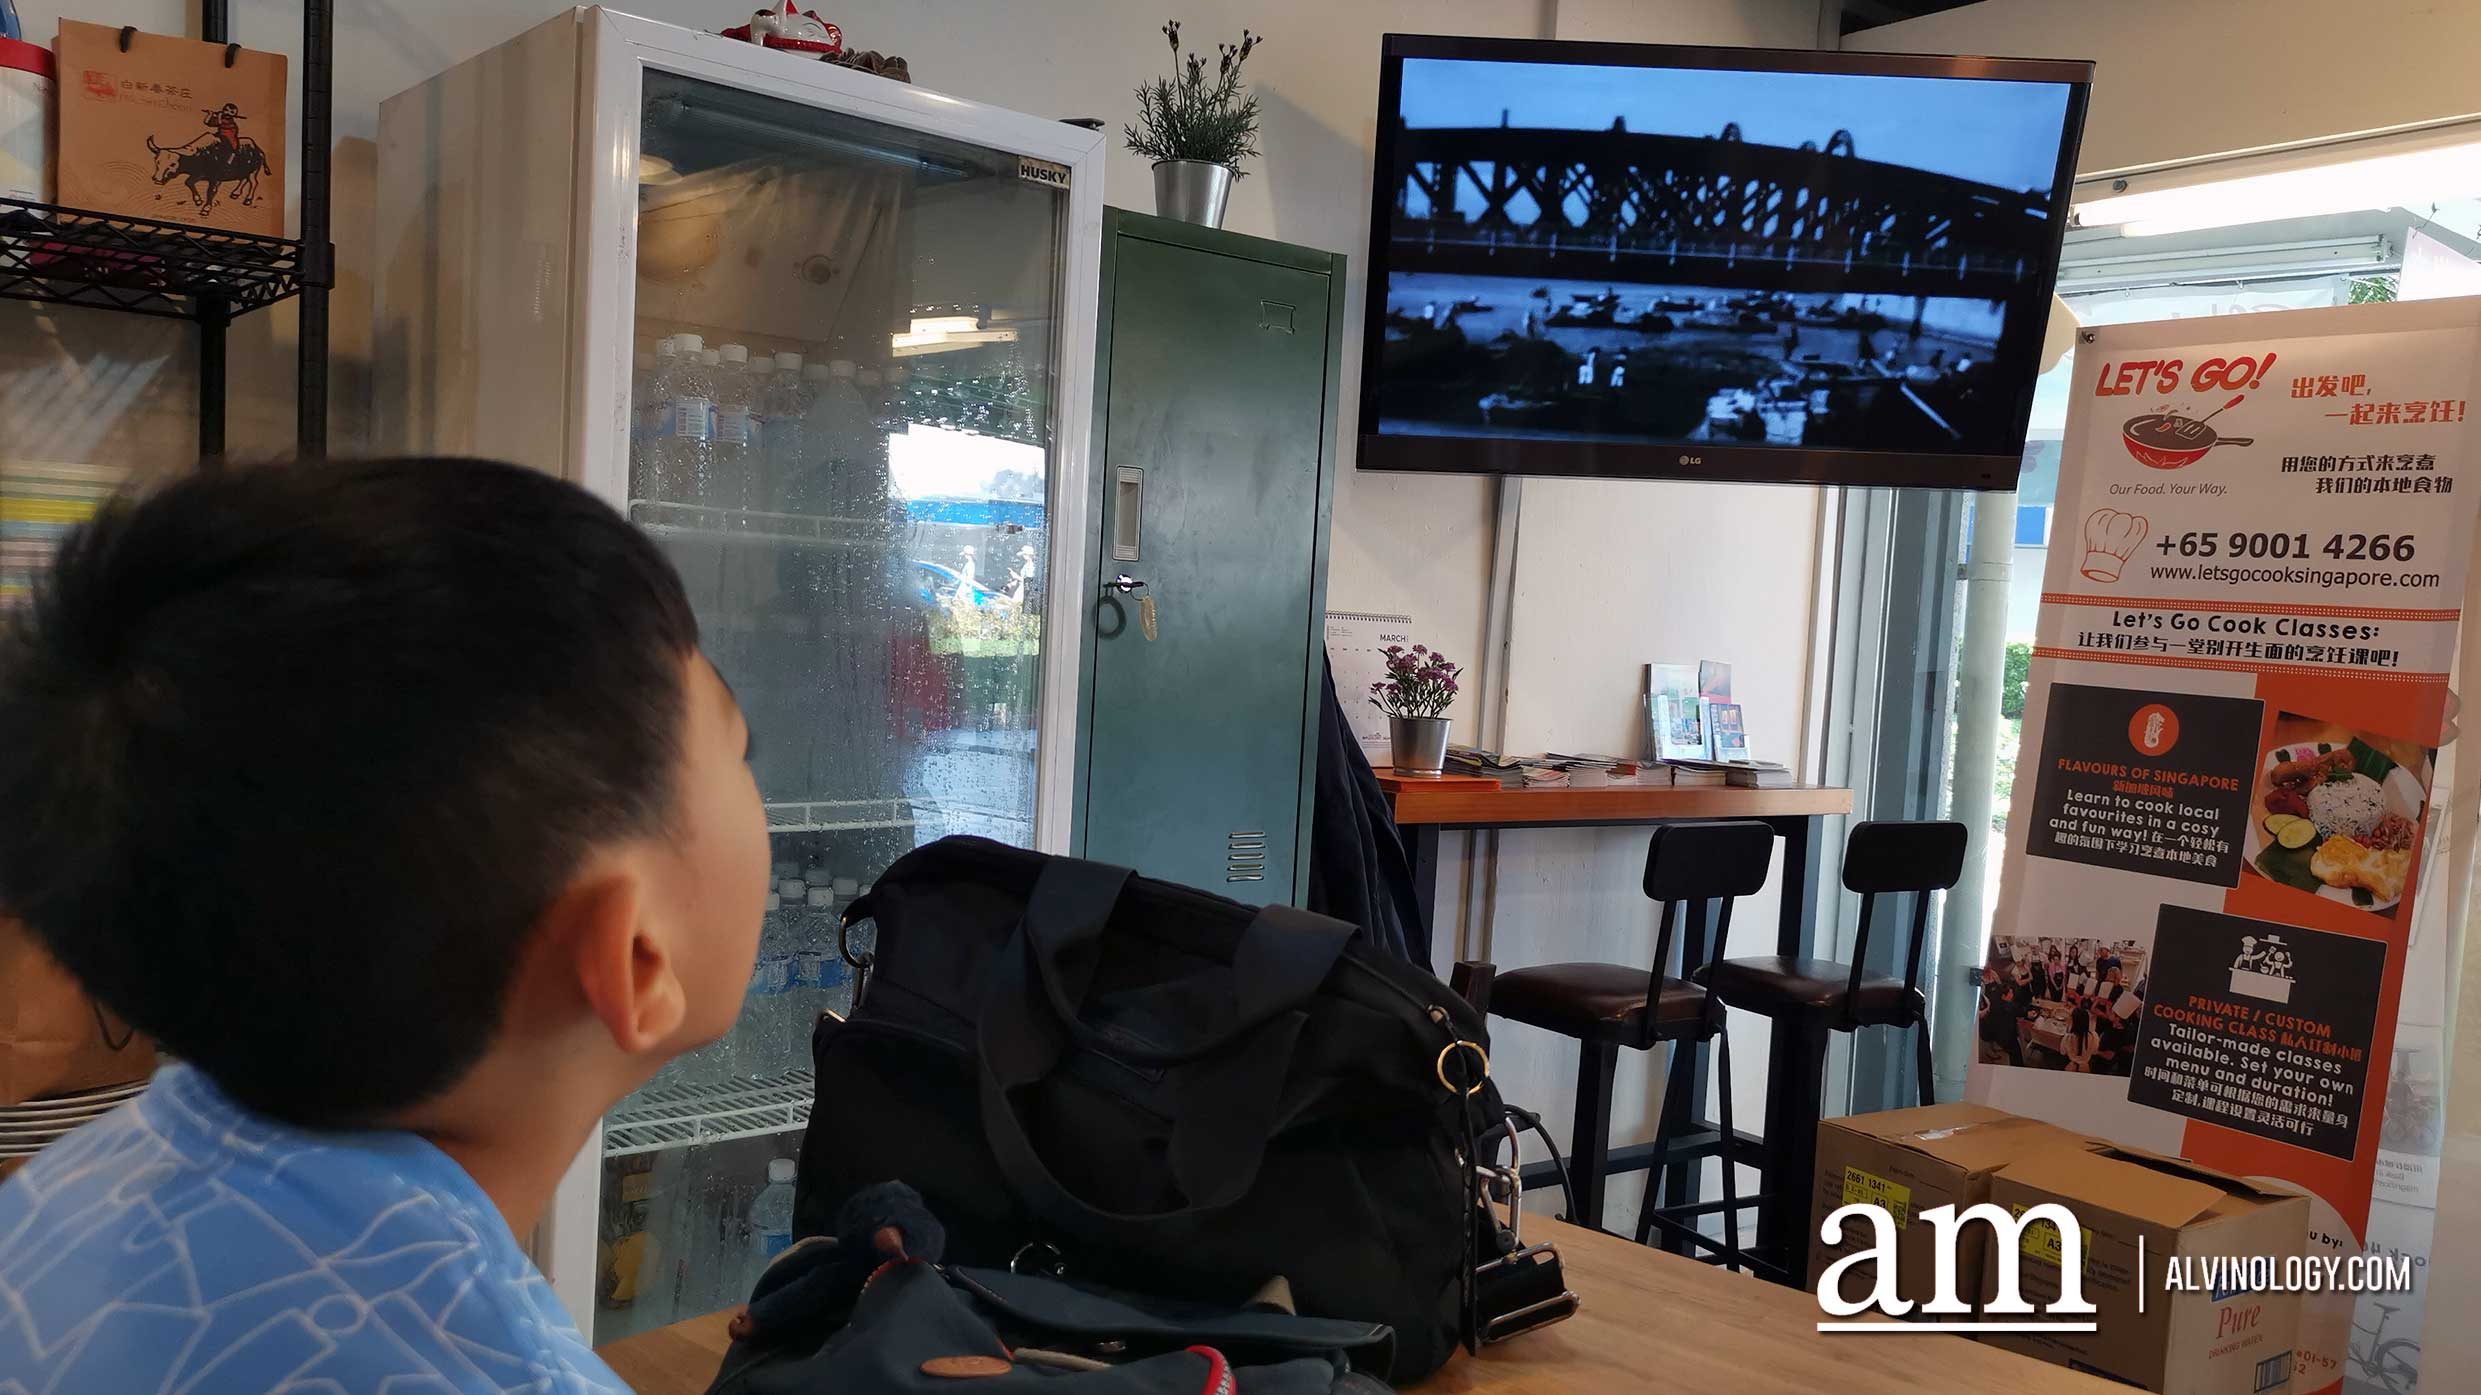 [Review] Trails of Tan Ah Huat, Singapore 1920s Bicycle Tour with Let's Go Tour - Alvinology